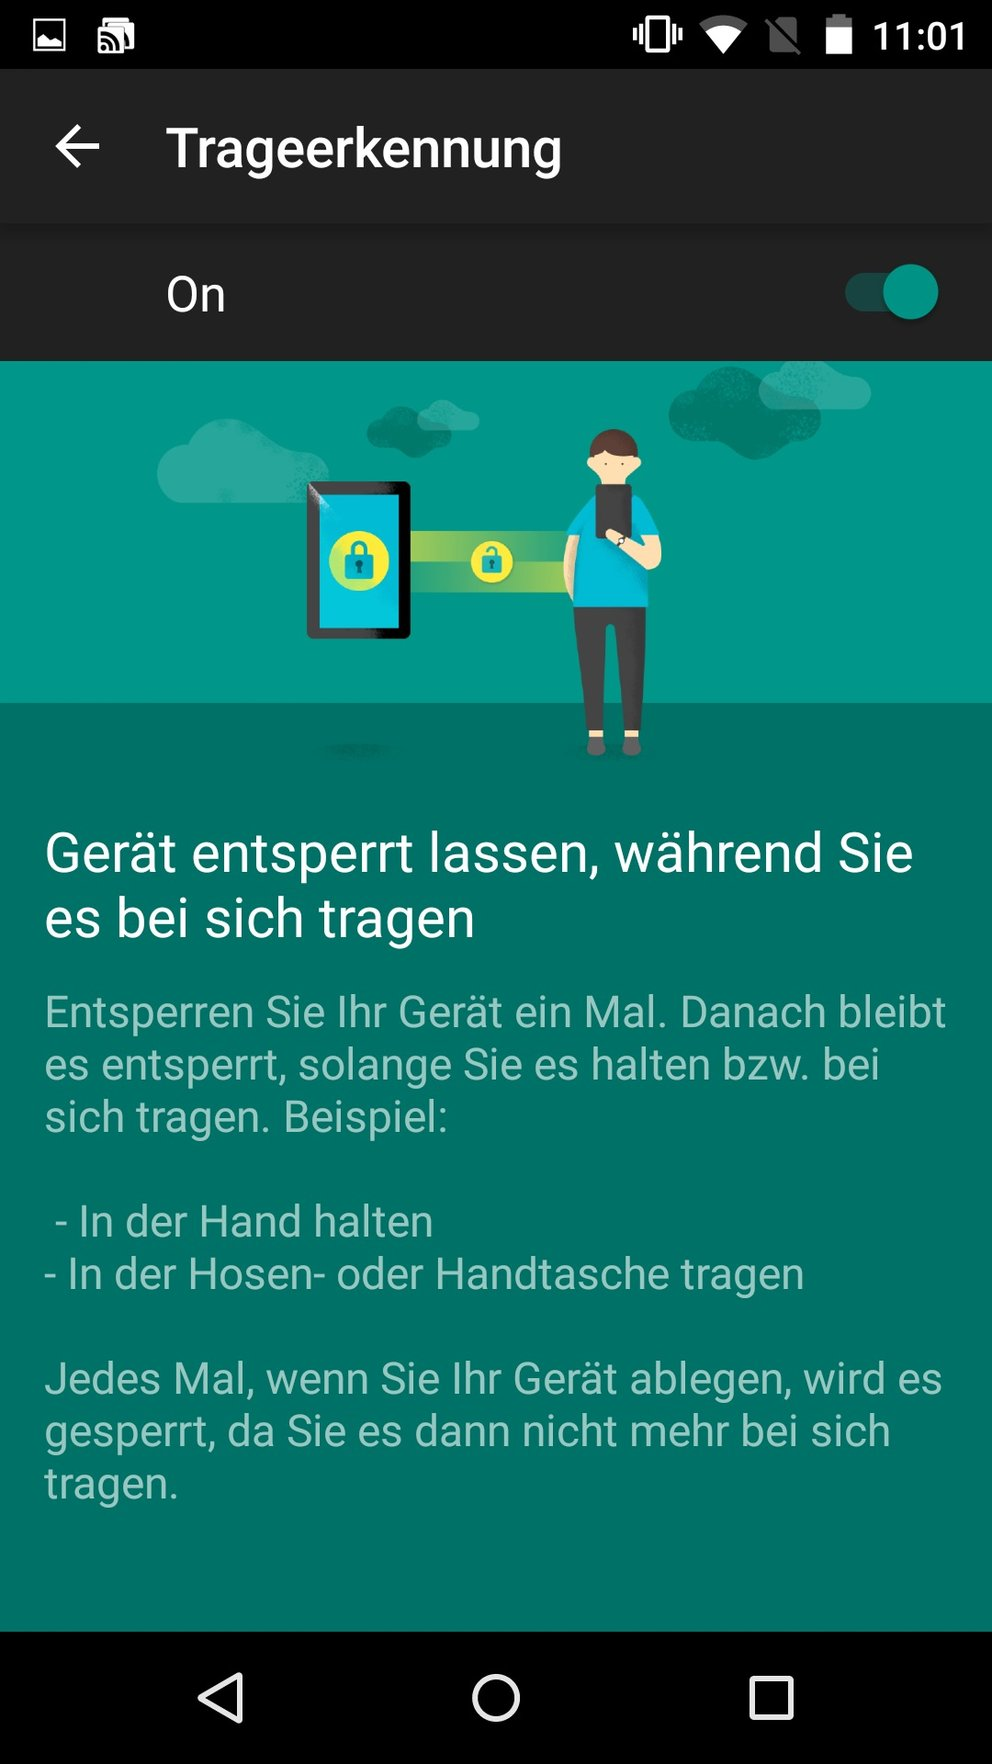 android-smart-lock-trageerkennung-2